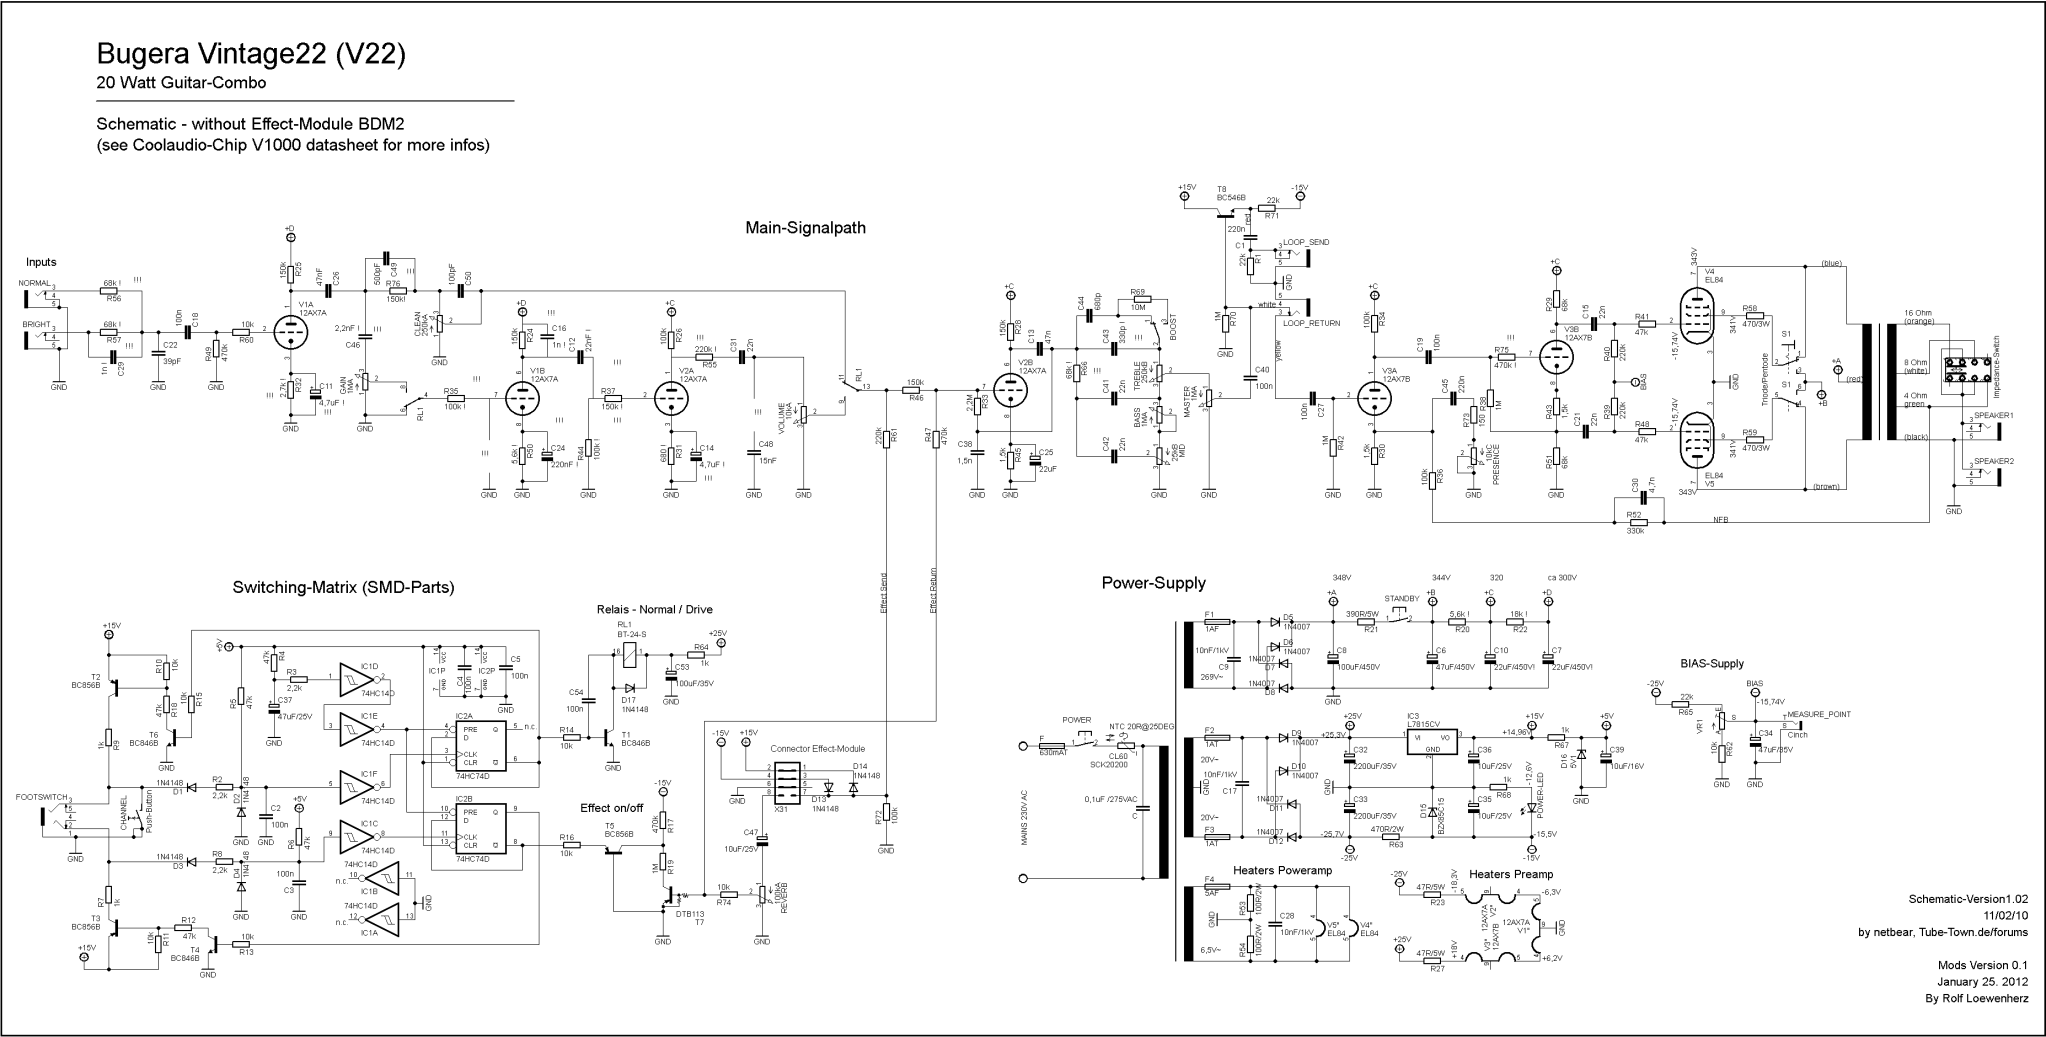 Bugera Schematics Ps The Reference Schematic Was Drawn By Netbear Docircuits Circuit Simulator Online Editor On Tubetown